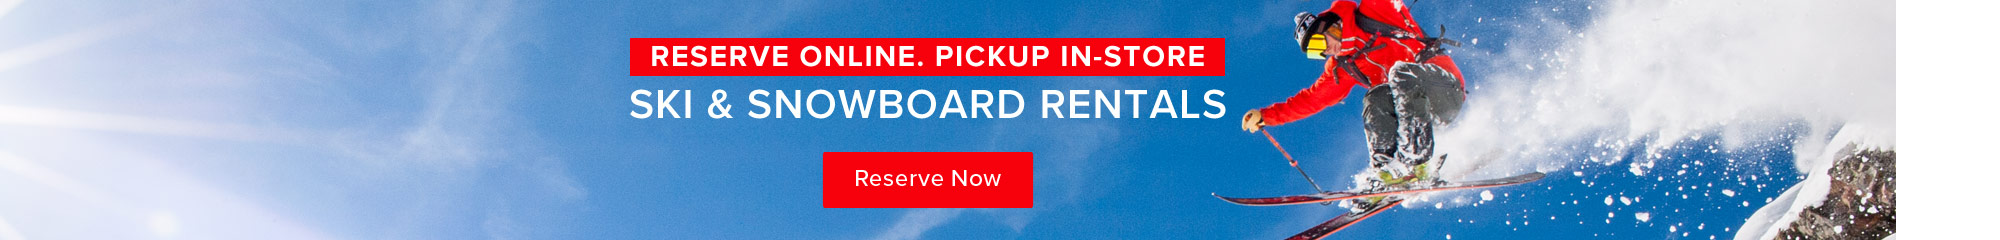 Reserve online. Pickup in-store. Ski and snowboard rental.